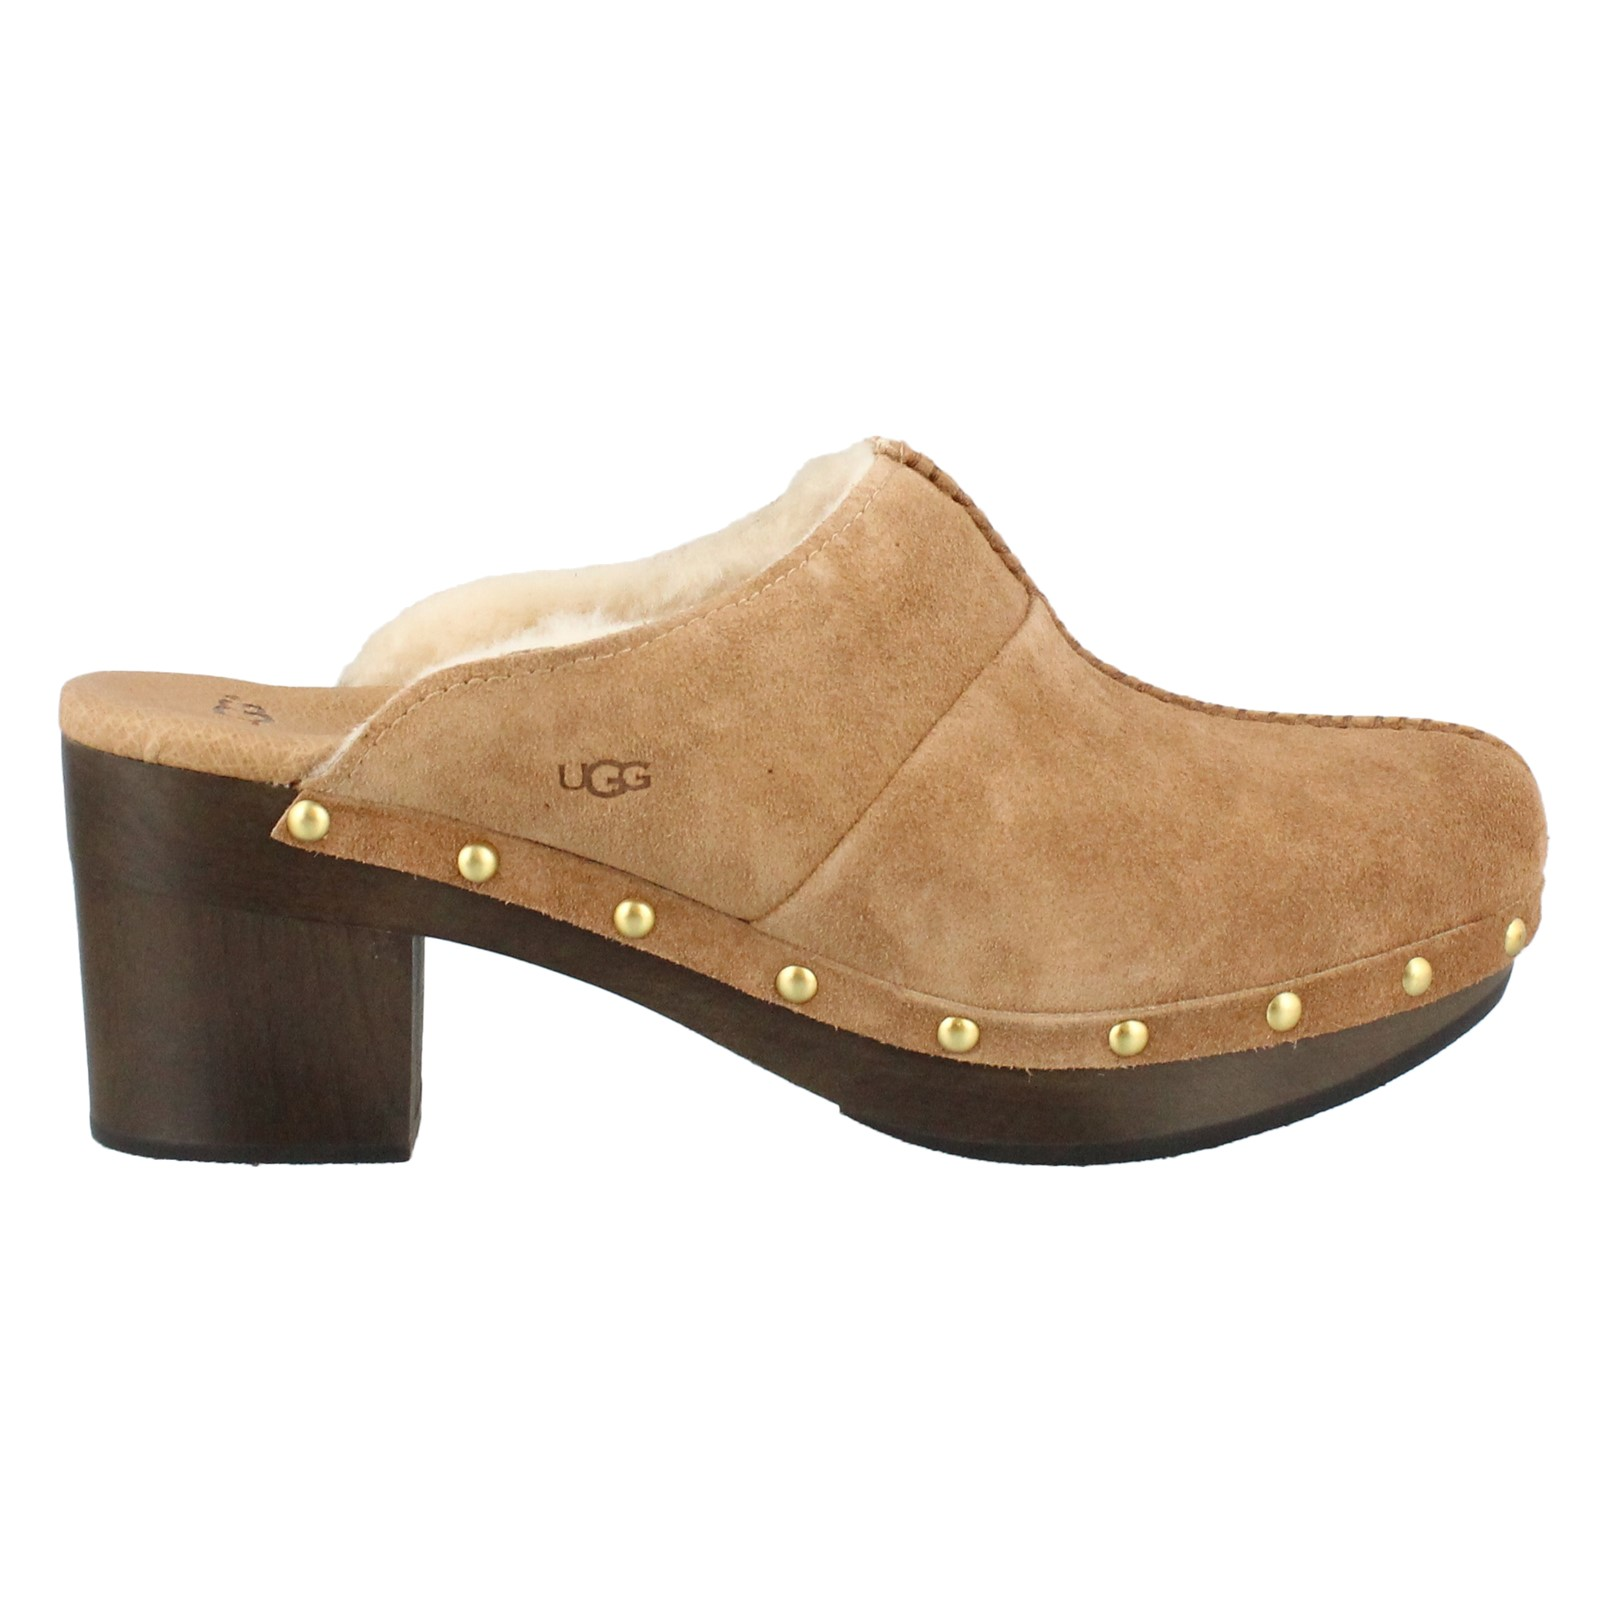 Women's Ugg, Kassi High Heel Clog